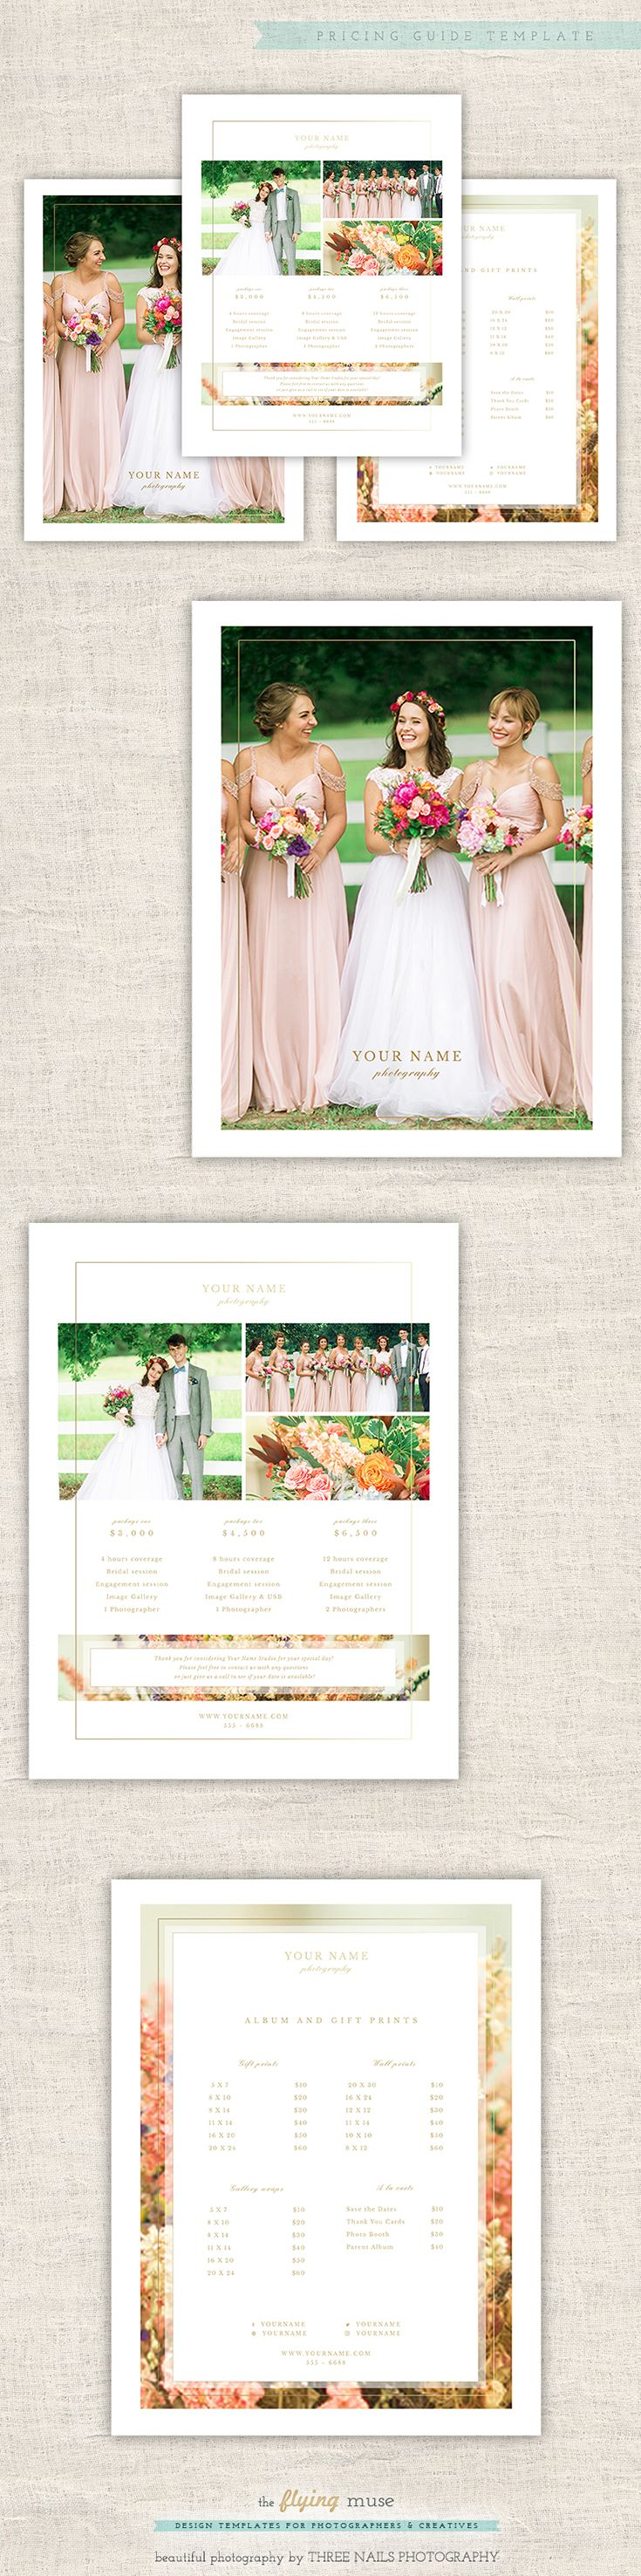 Wedding Pricing Guide Template Design by theFlyingMuse, photography by Three Nails Photography